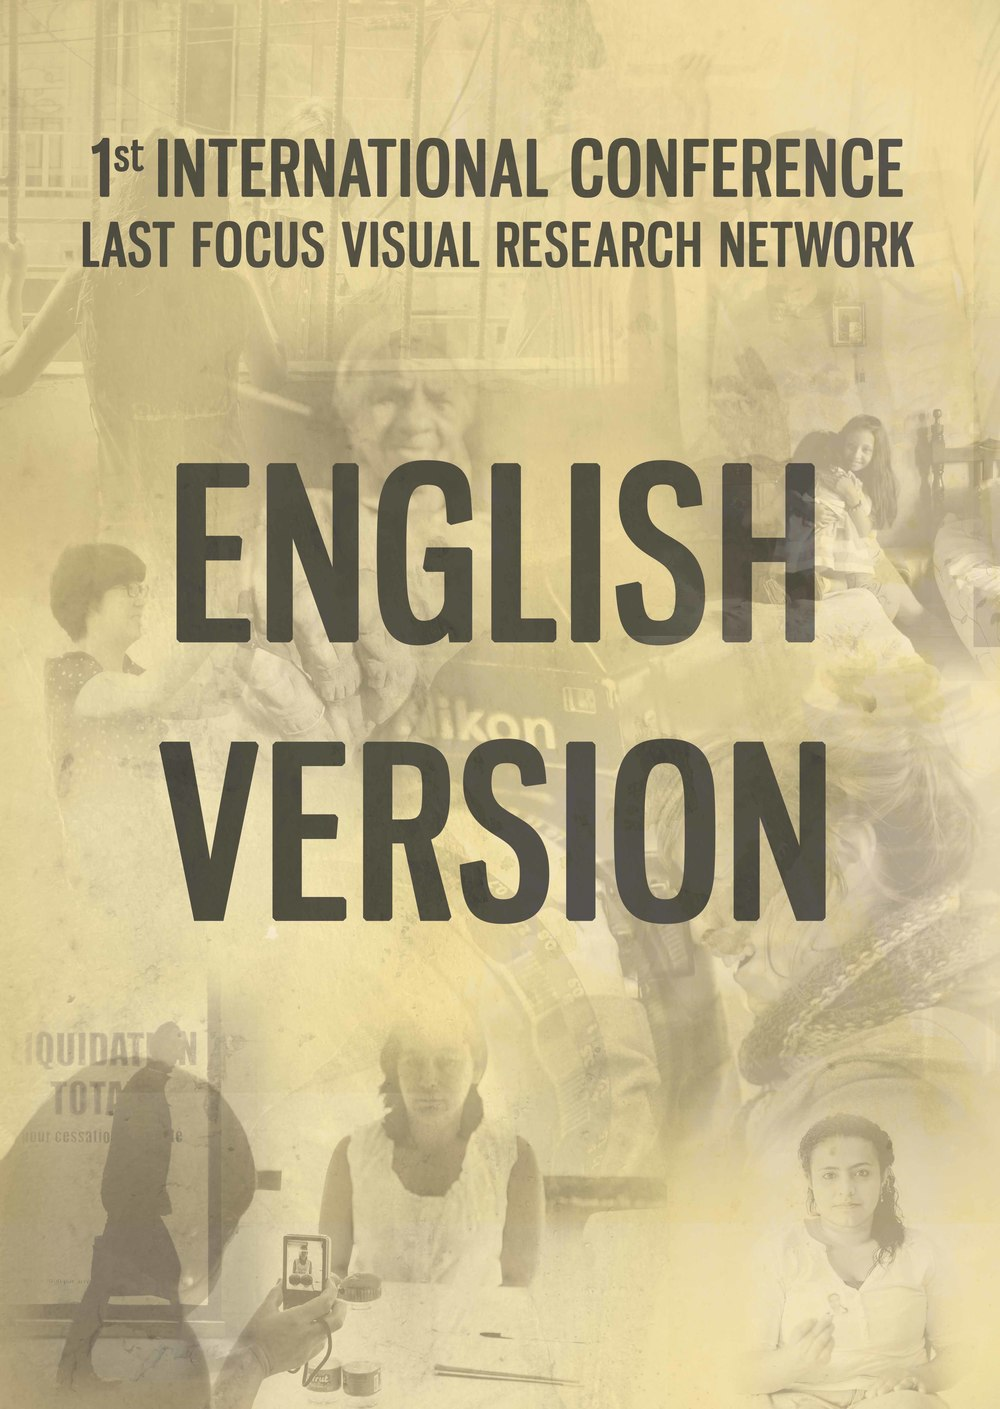 EN - 1st International Conference Last Focus Visual Research Network